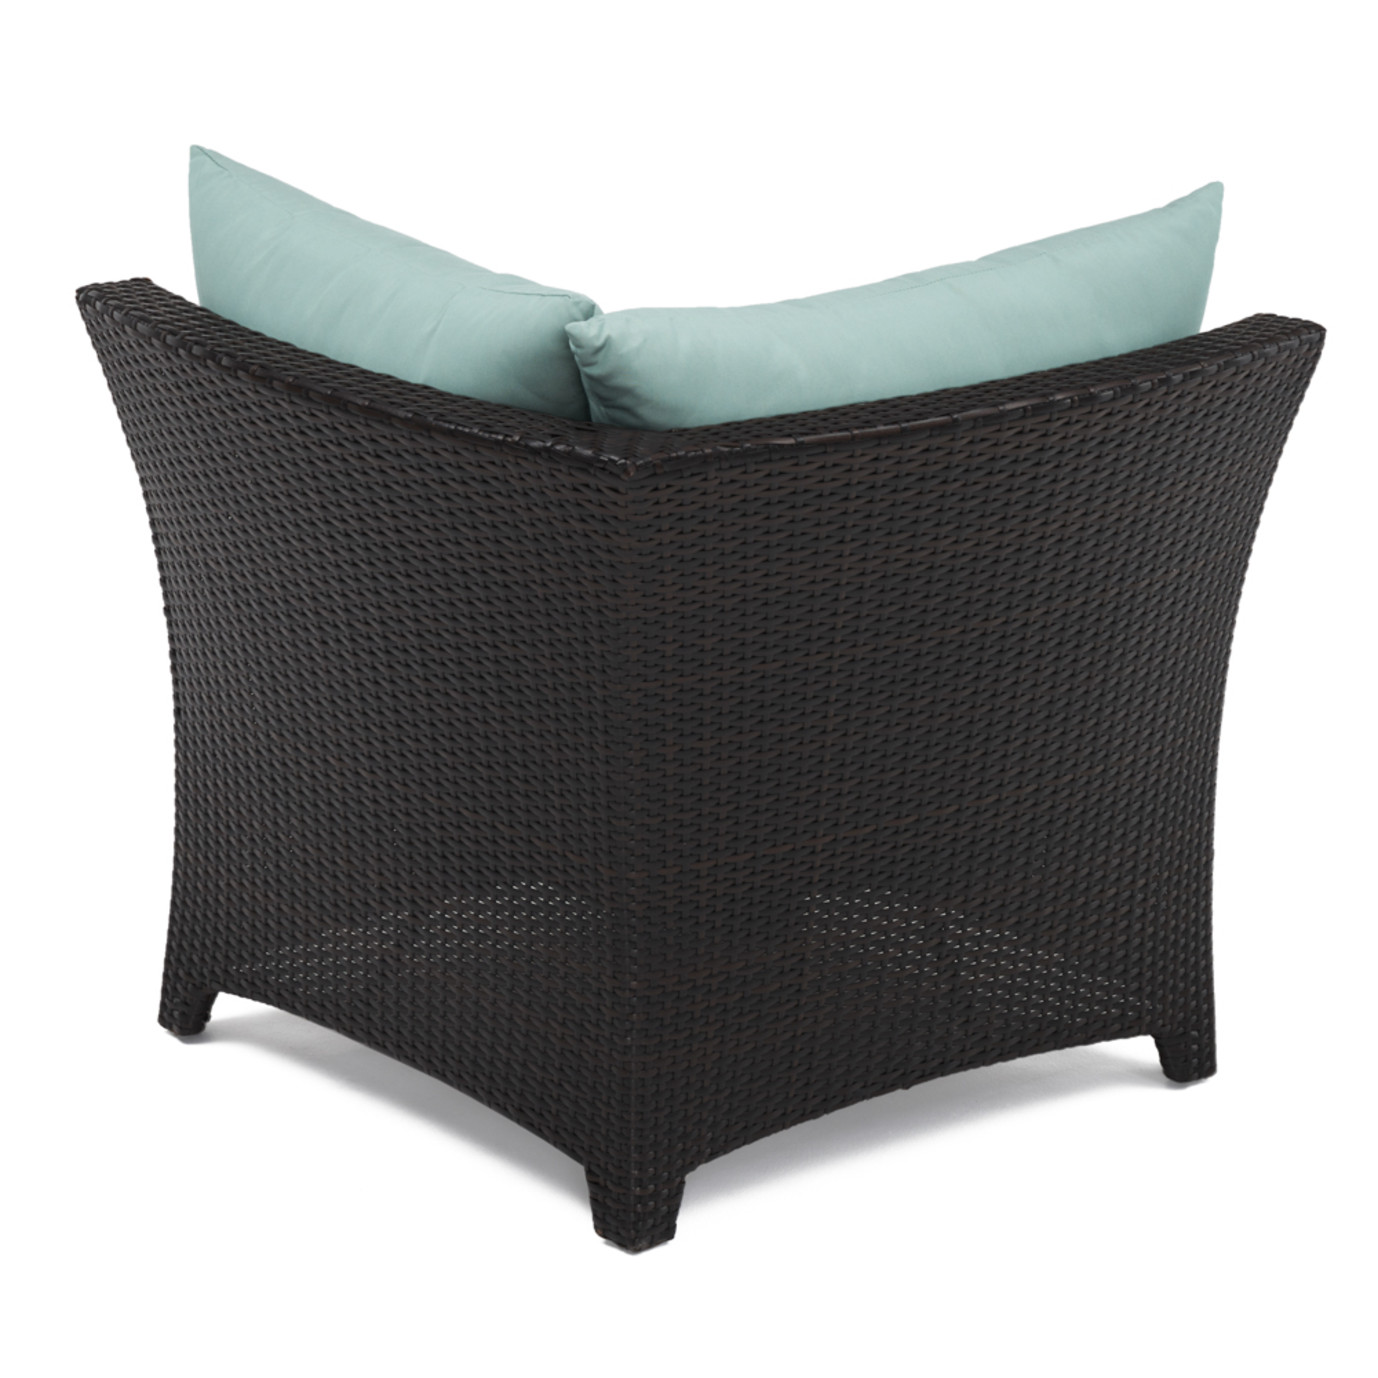 Deco™ Corner Chair - Bliss Blue